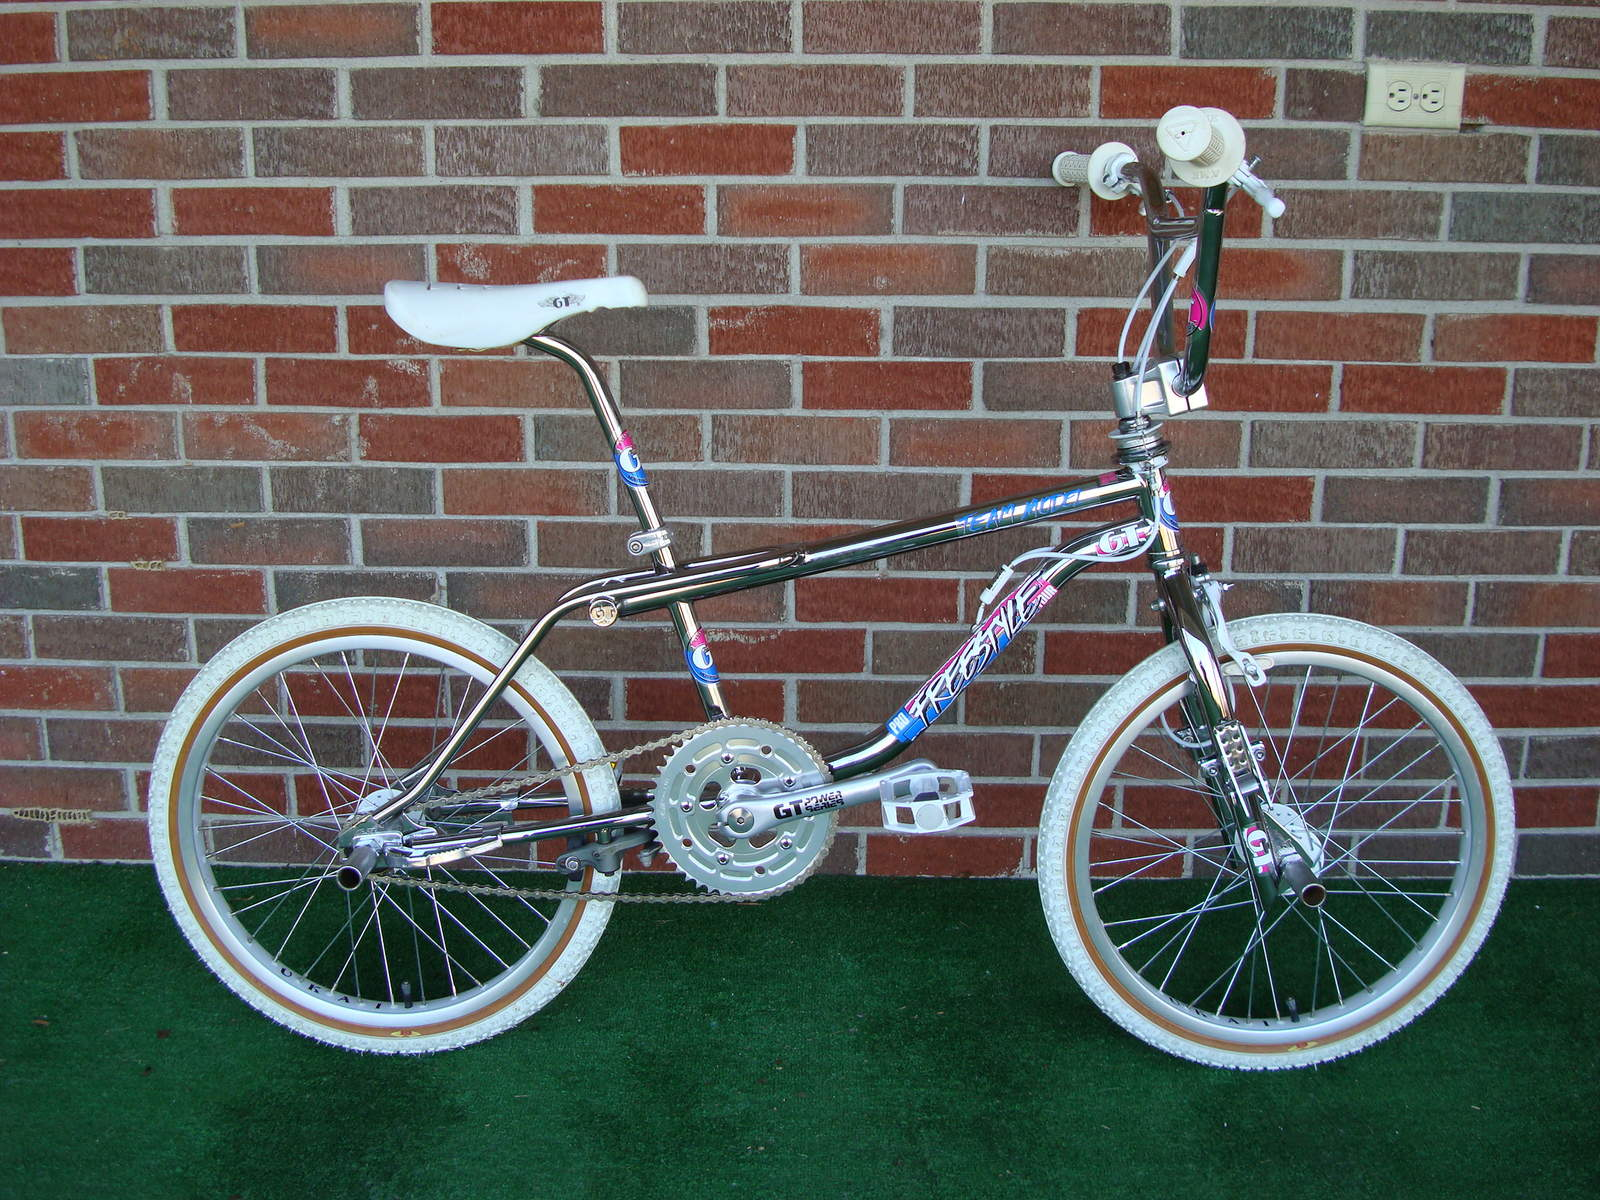 https://s3.amazonaws.com/uploads.bmxmuseum.com/user-images/2135/dsc0352857cd747714.jpg